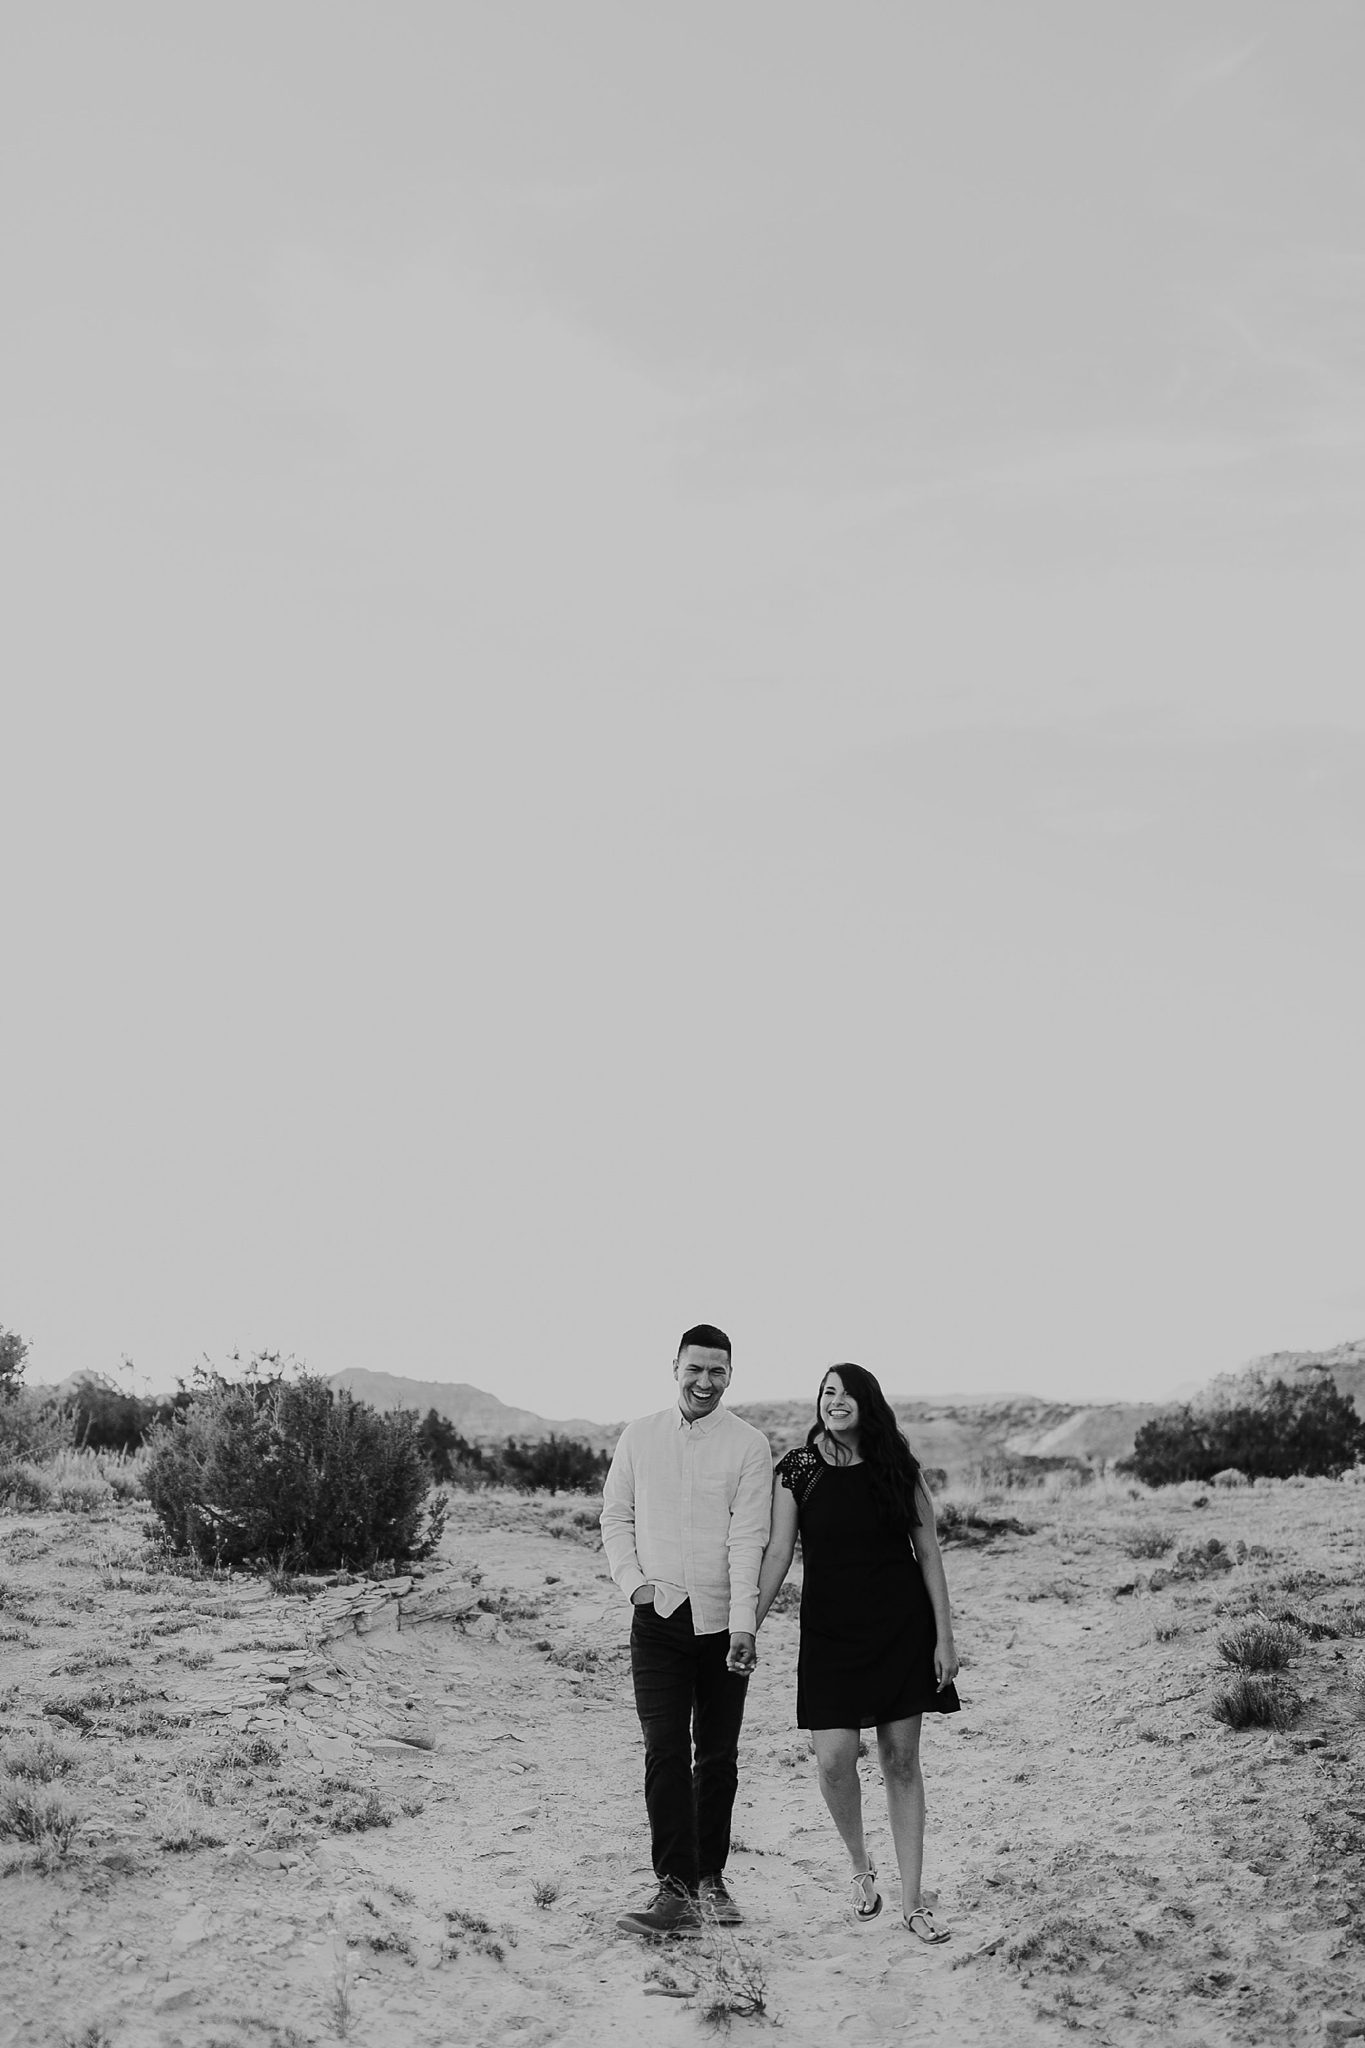 Alicia+lucia+photography+-+albuquerque+wedding+photographer+-+santa+fe+wedding+photography+-+new+mexico+wedding+photographer+-+new+mexico+wedding+-+new+mexico+engagement+-+white+mesa+engagement+-+desert+engagement_0016.jpg